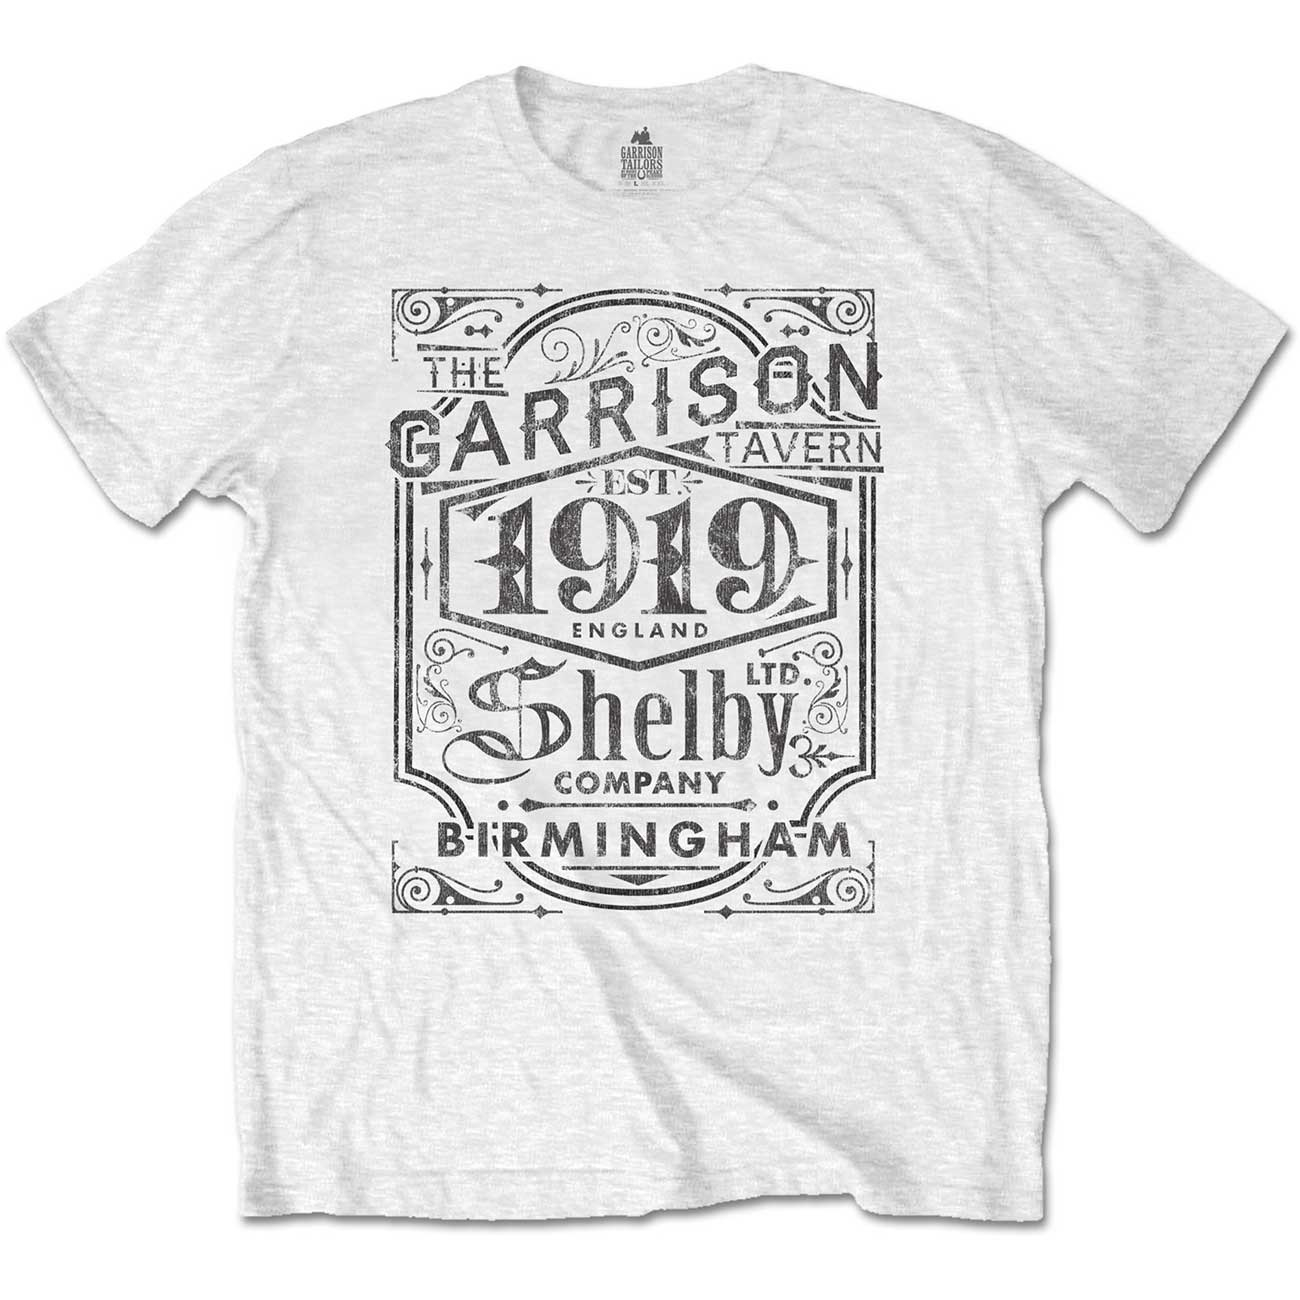 550cfb37 Peaky Blinders 'Garrison Pub' (White) T-Shirt - NEW & OFFICIAL! Product  Description. Officially Licensed Merchandise